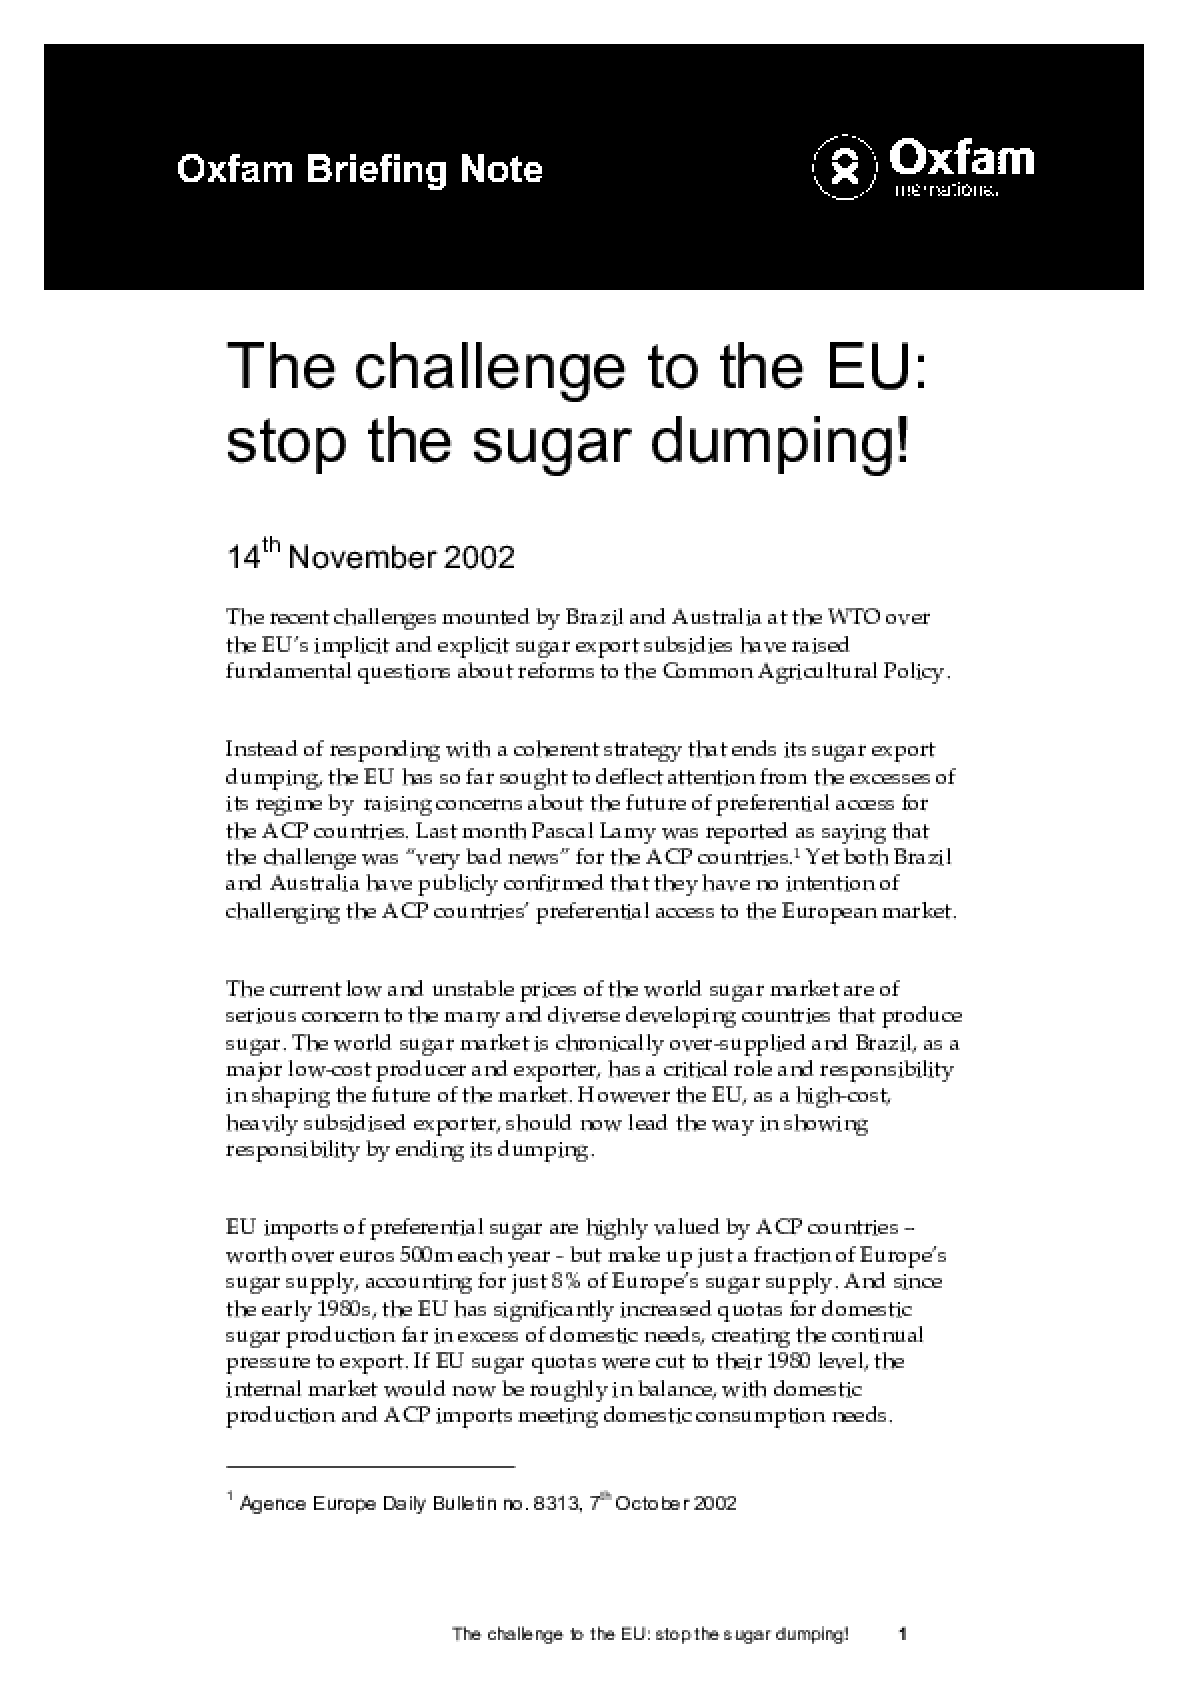 The Challenge to the EU: Stop the Sugar Dumping!